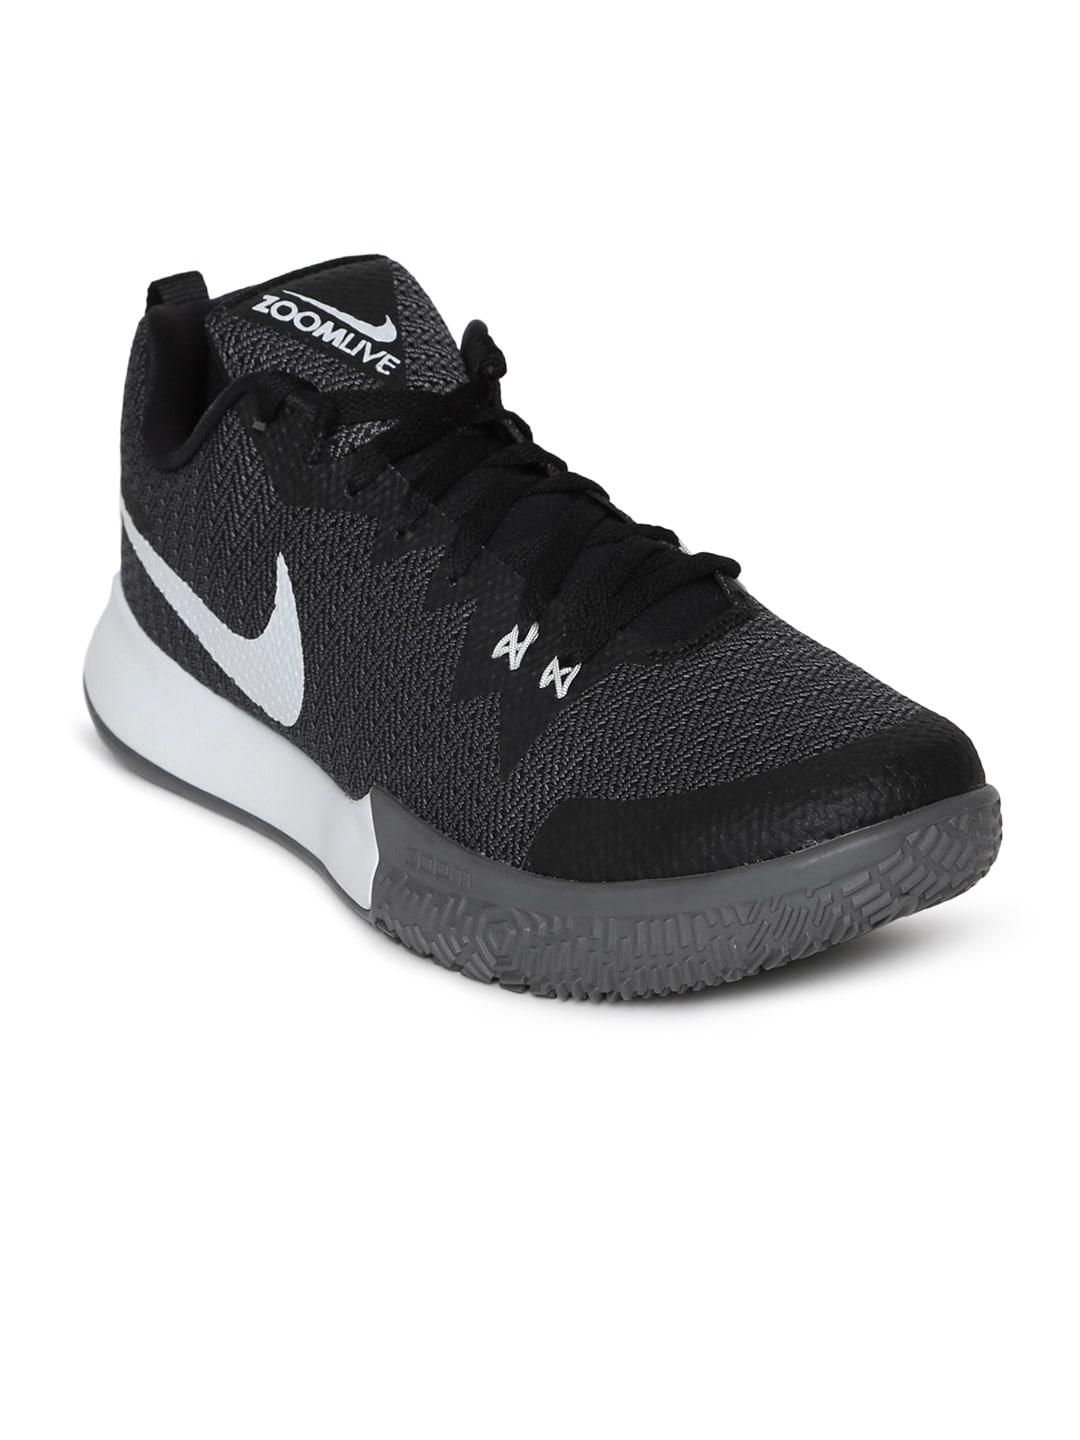 Nike Basketball Shoes  0b498cd1c